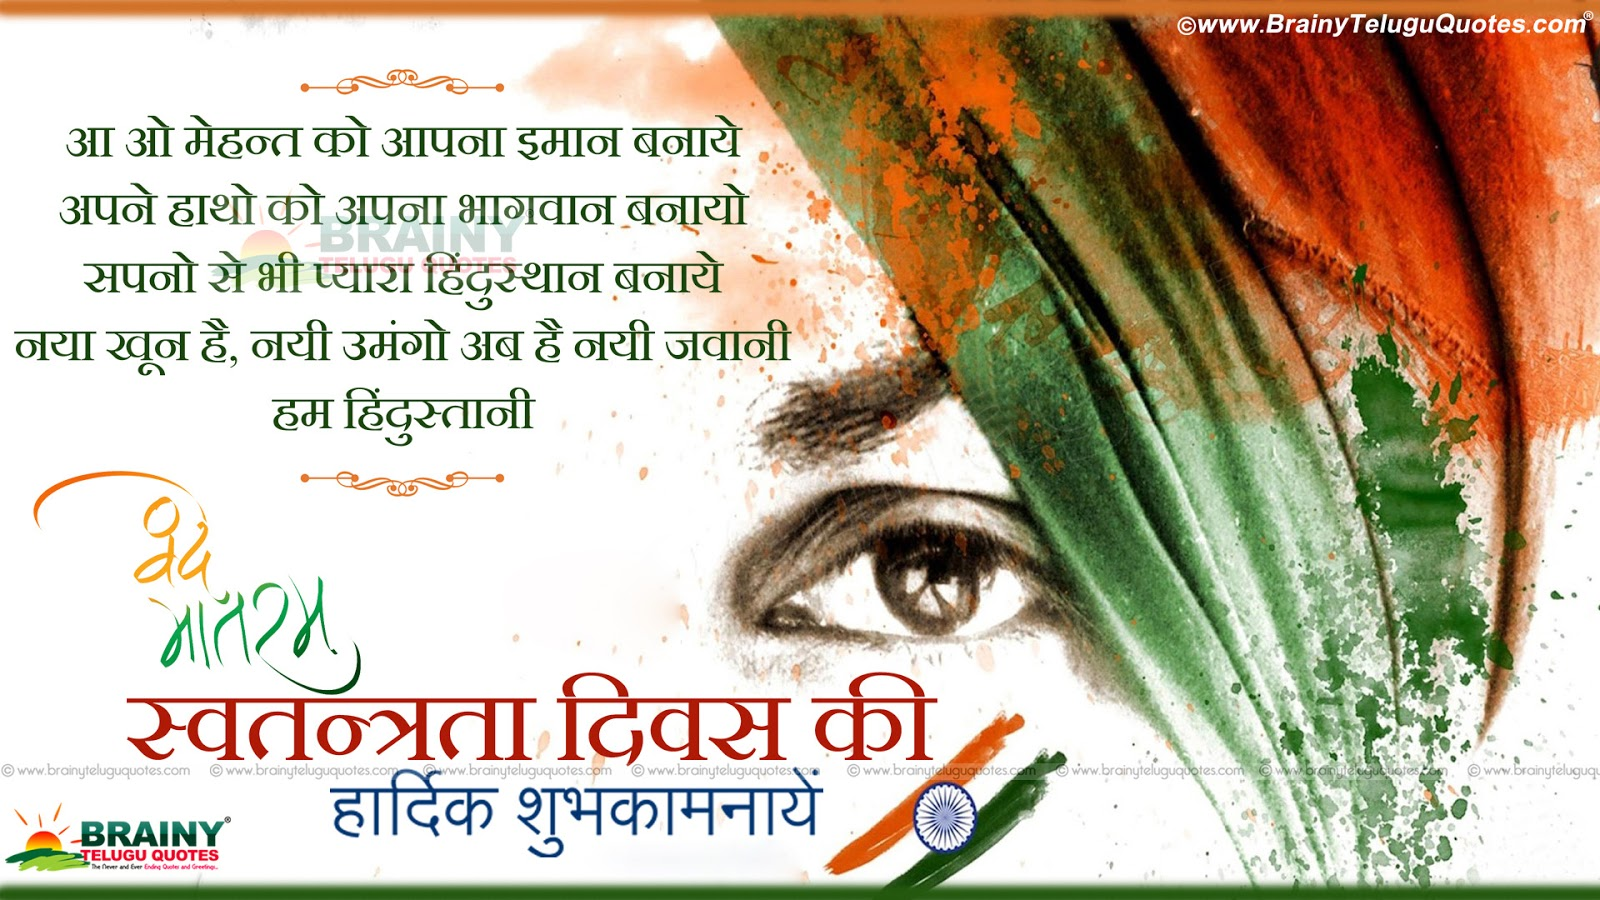 Independence Day wishes Shayari greeting cards Quotations ...